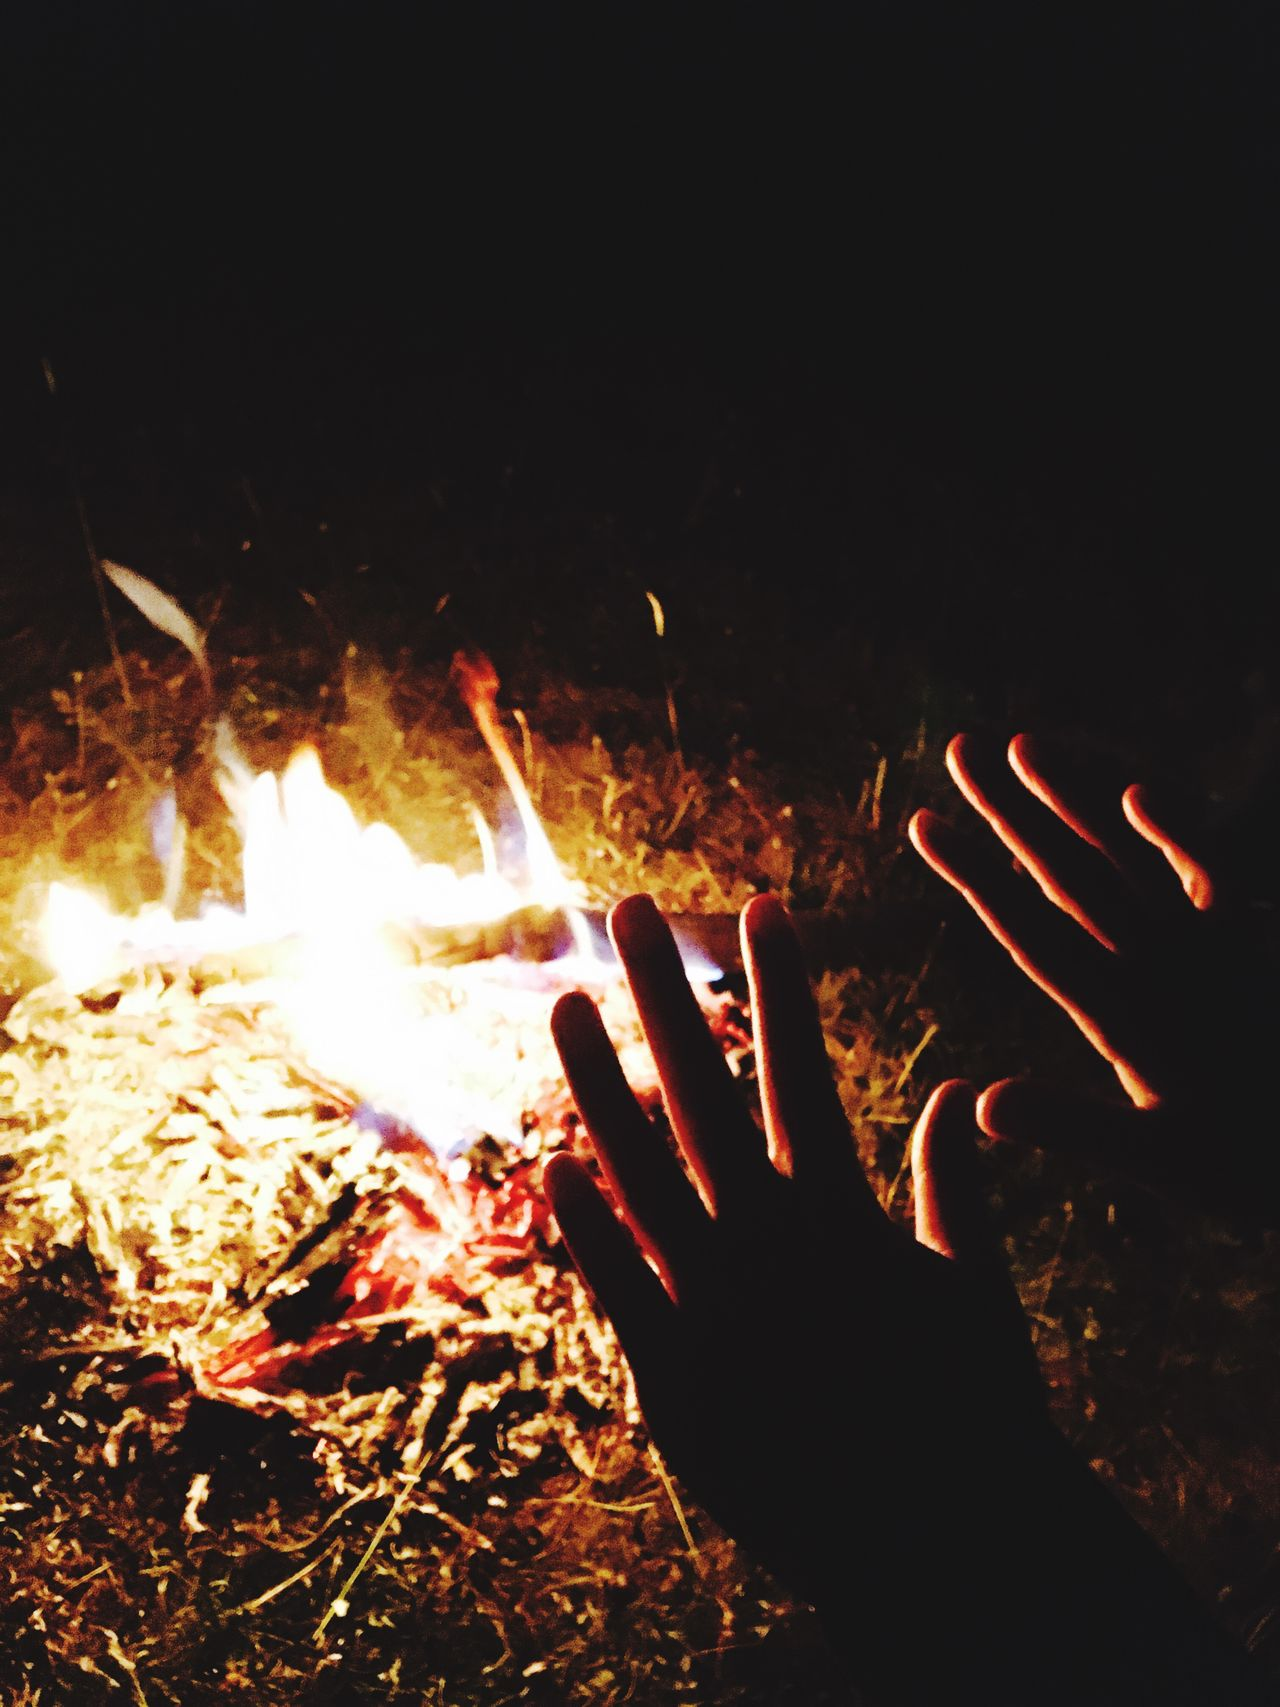 EyeEm Selects EyeEmNewHere Fire - Natural Phenomenon Flame Burning Heat - Temperature Human Hand Glowing Night Bonfire Human Body Part Fire Campfire One Person Real People Outdoors Fire Pit Men Close-up Inferno People Firework Neon Life